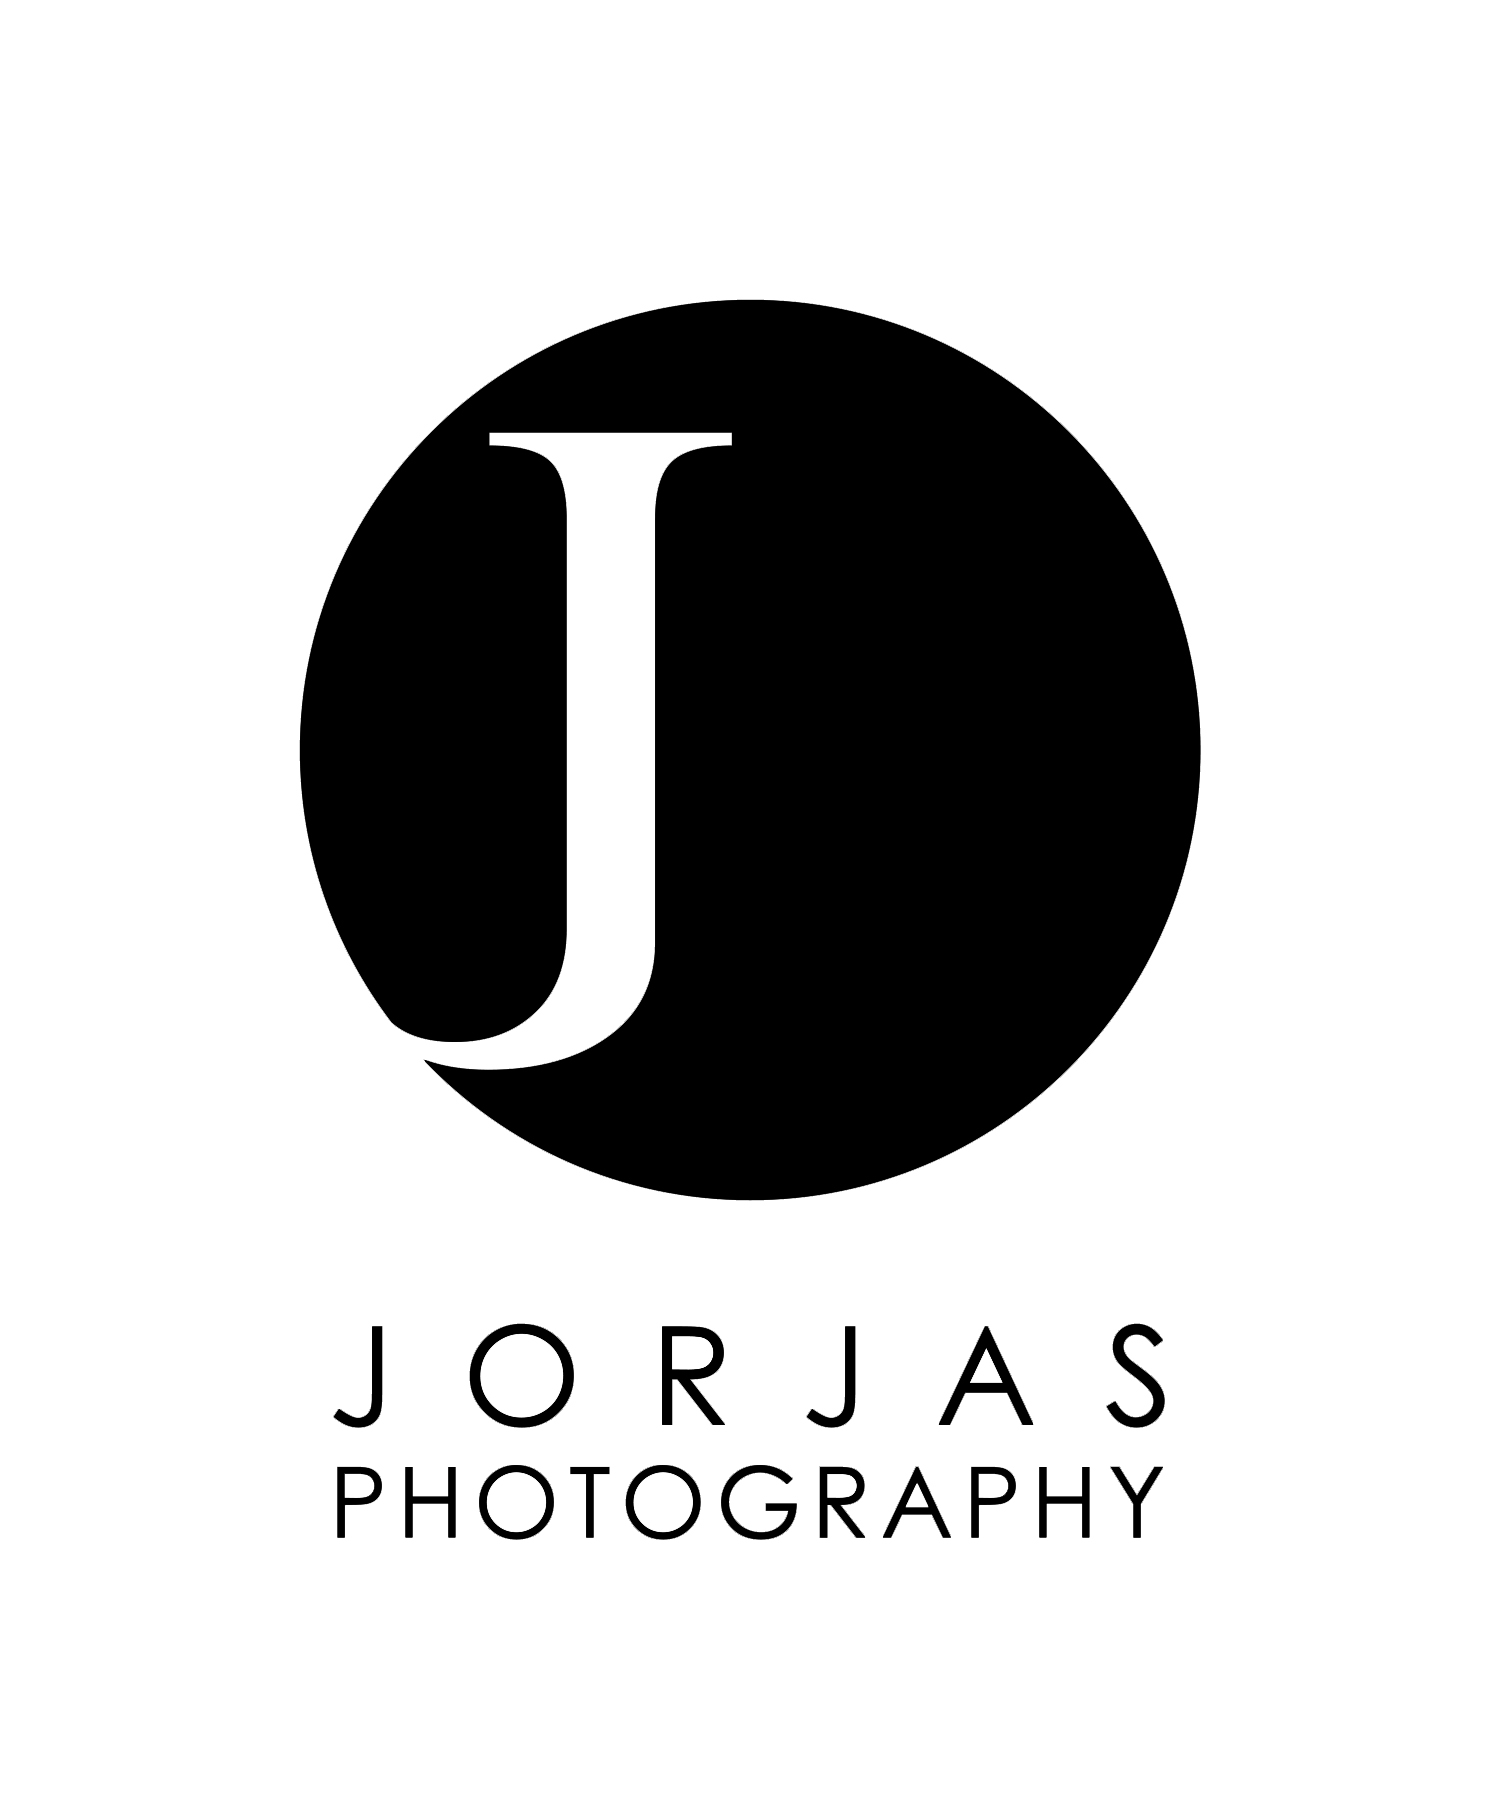 2015_Jorjas_Photography_Final_White (2).jpg